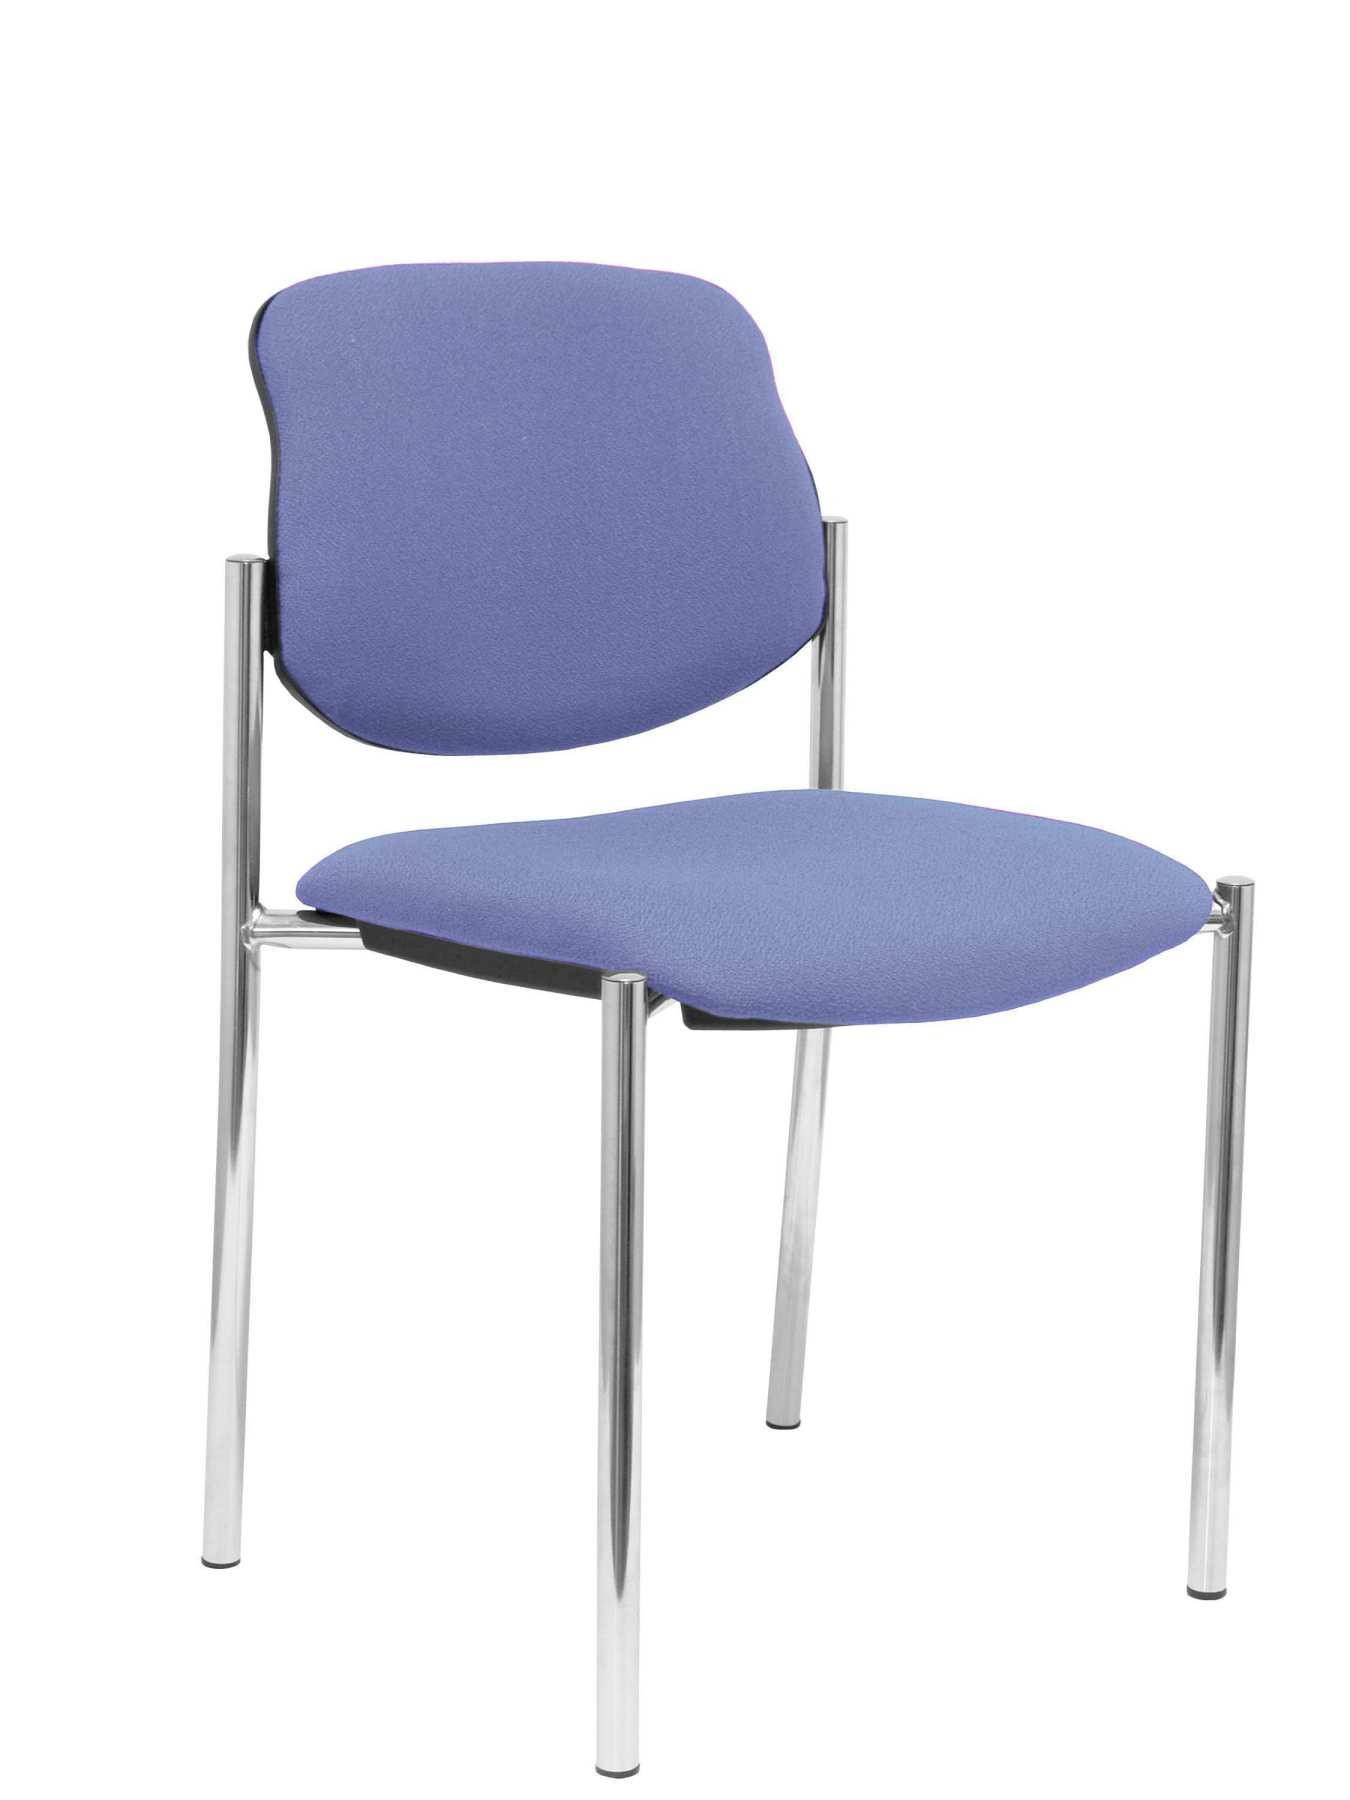 Confident Chair 4-leg And Estructrua Chrome Seat And Back Upholstered In Fabric BALI Light Blue PIQUERAS